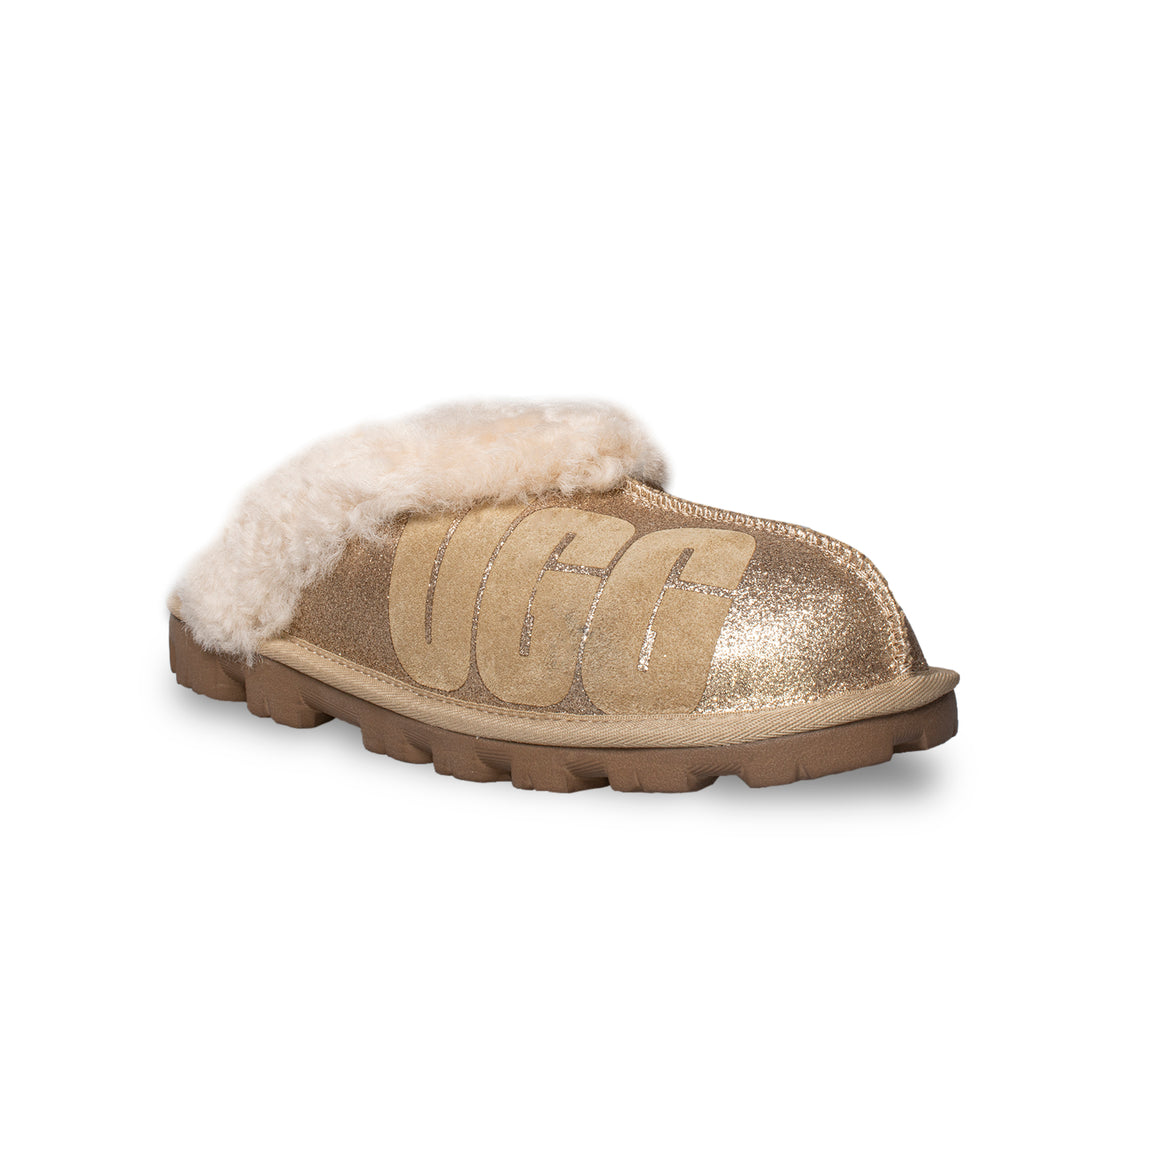 UGG Coquette UGG Sparkle Gold Slippers - Women's